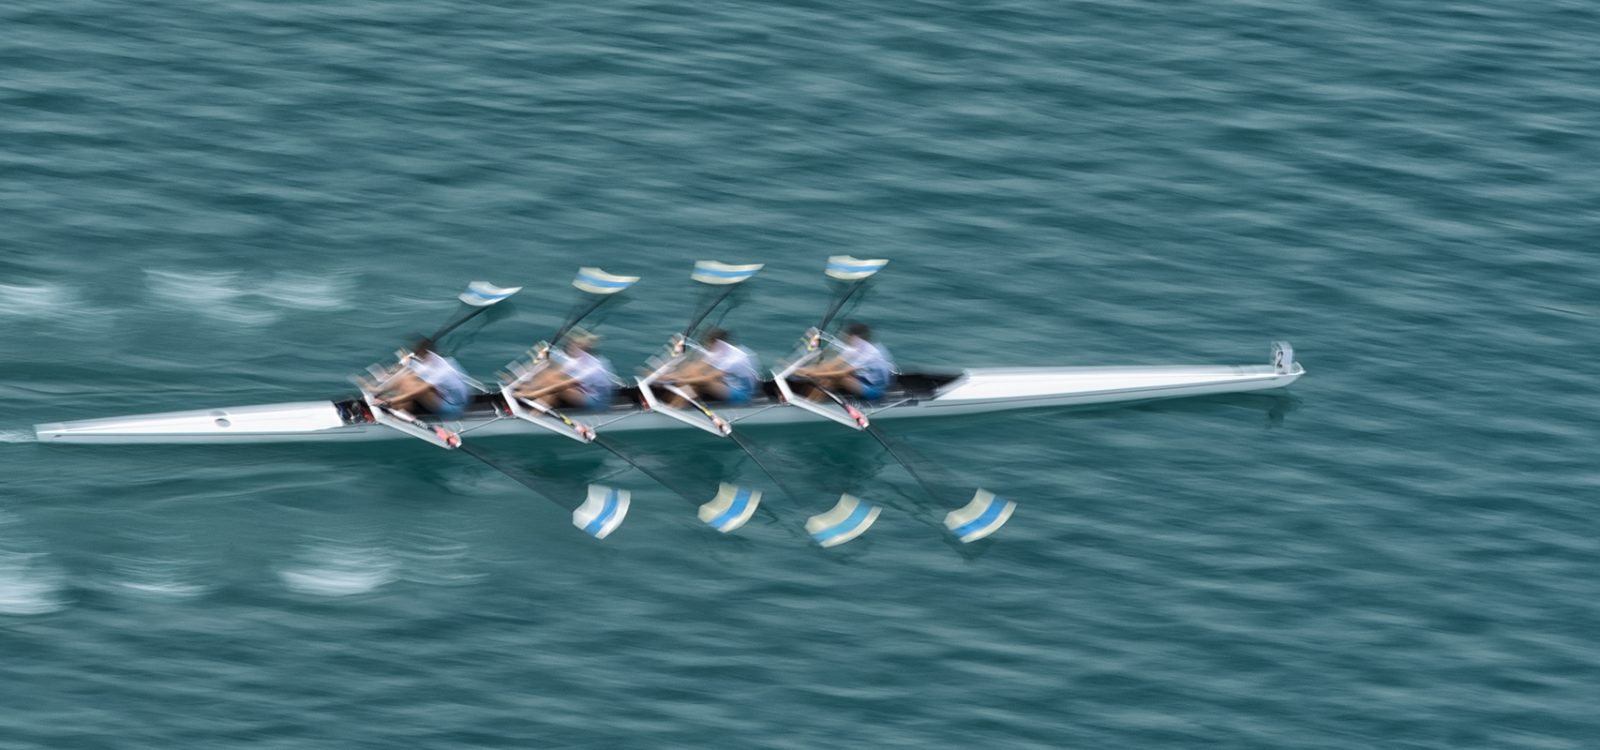 Quadruple Scull Rowing Team Practicing, Blurred Motion